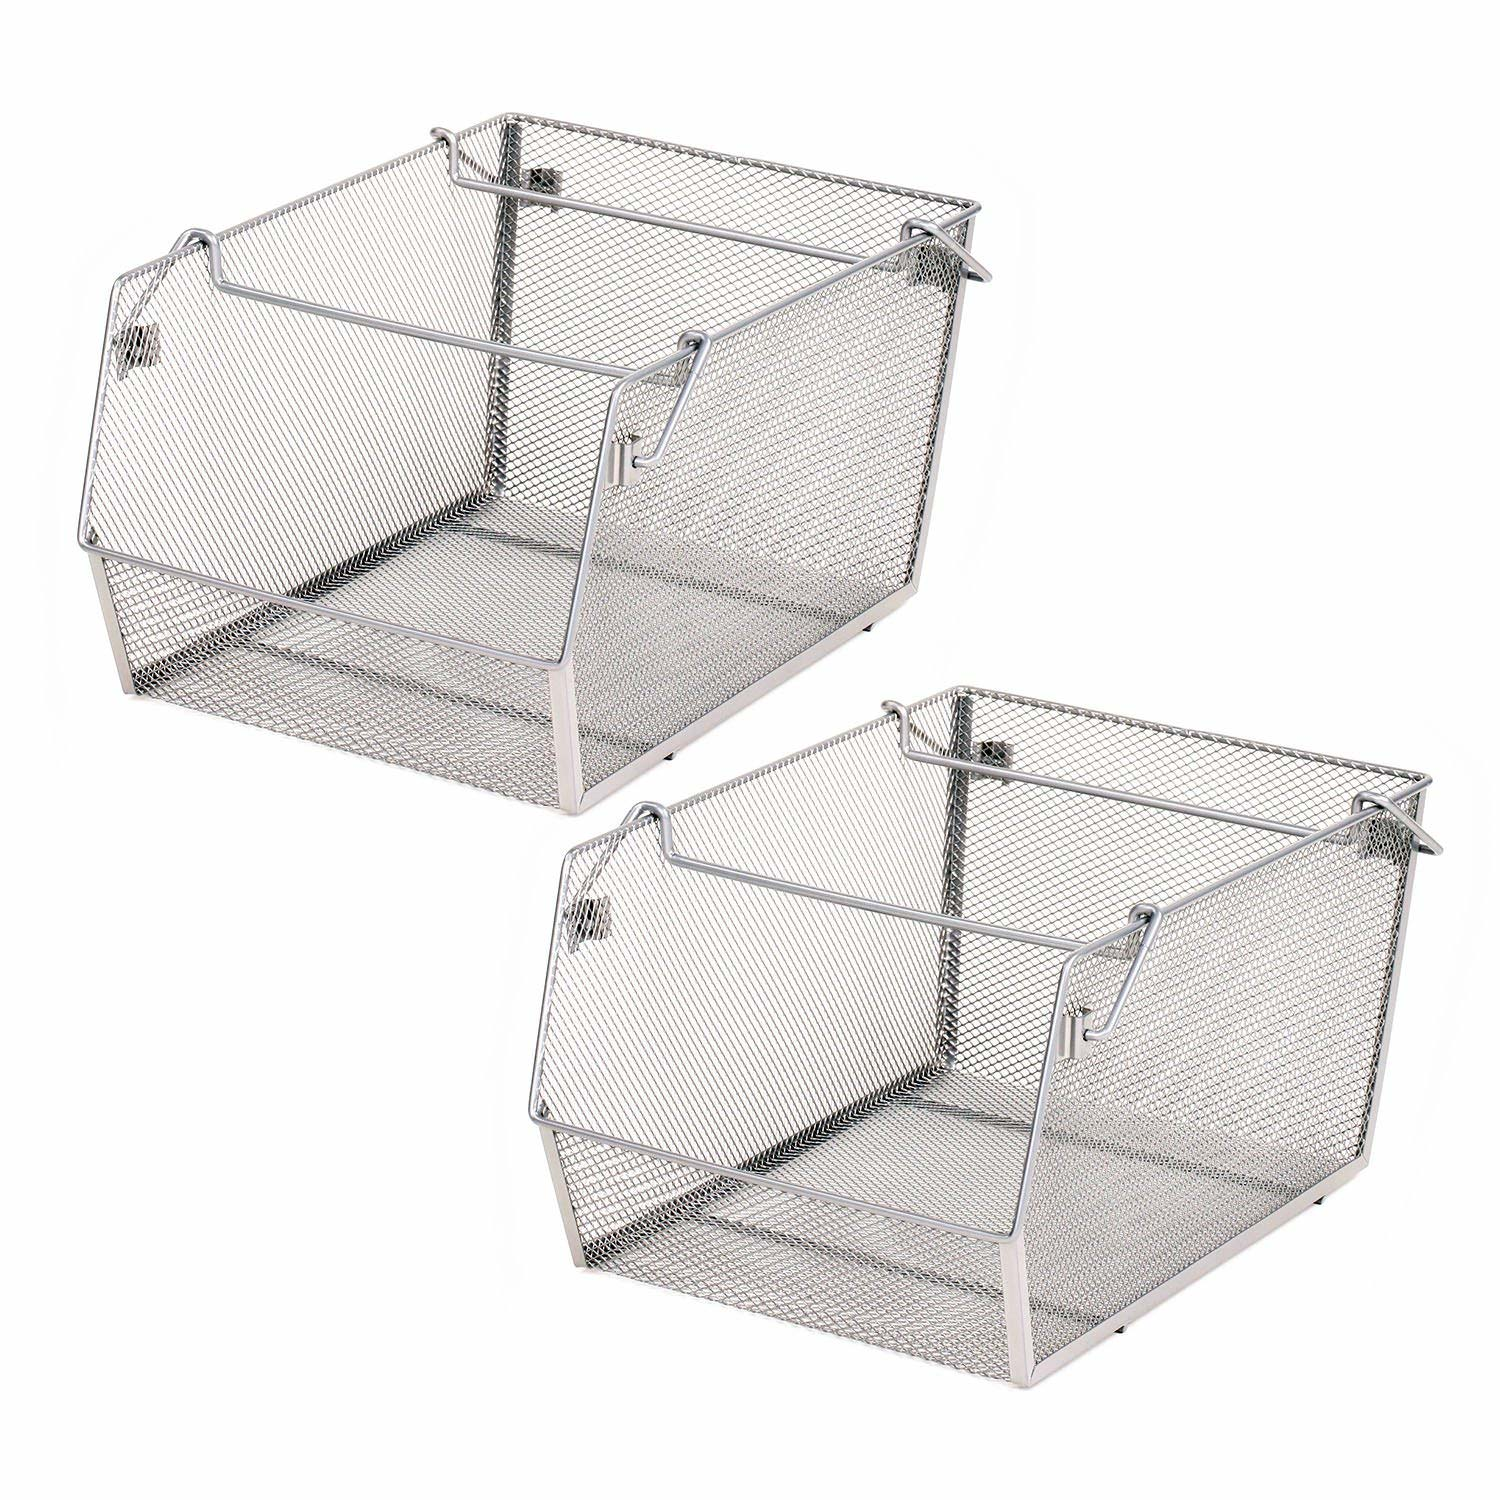 Large Stacking Mesh Storage Bins (2-Pack)